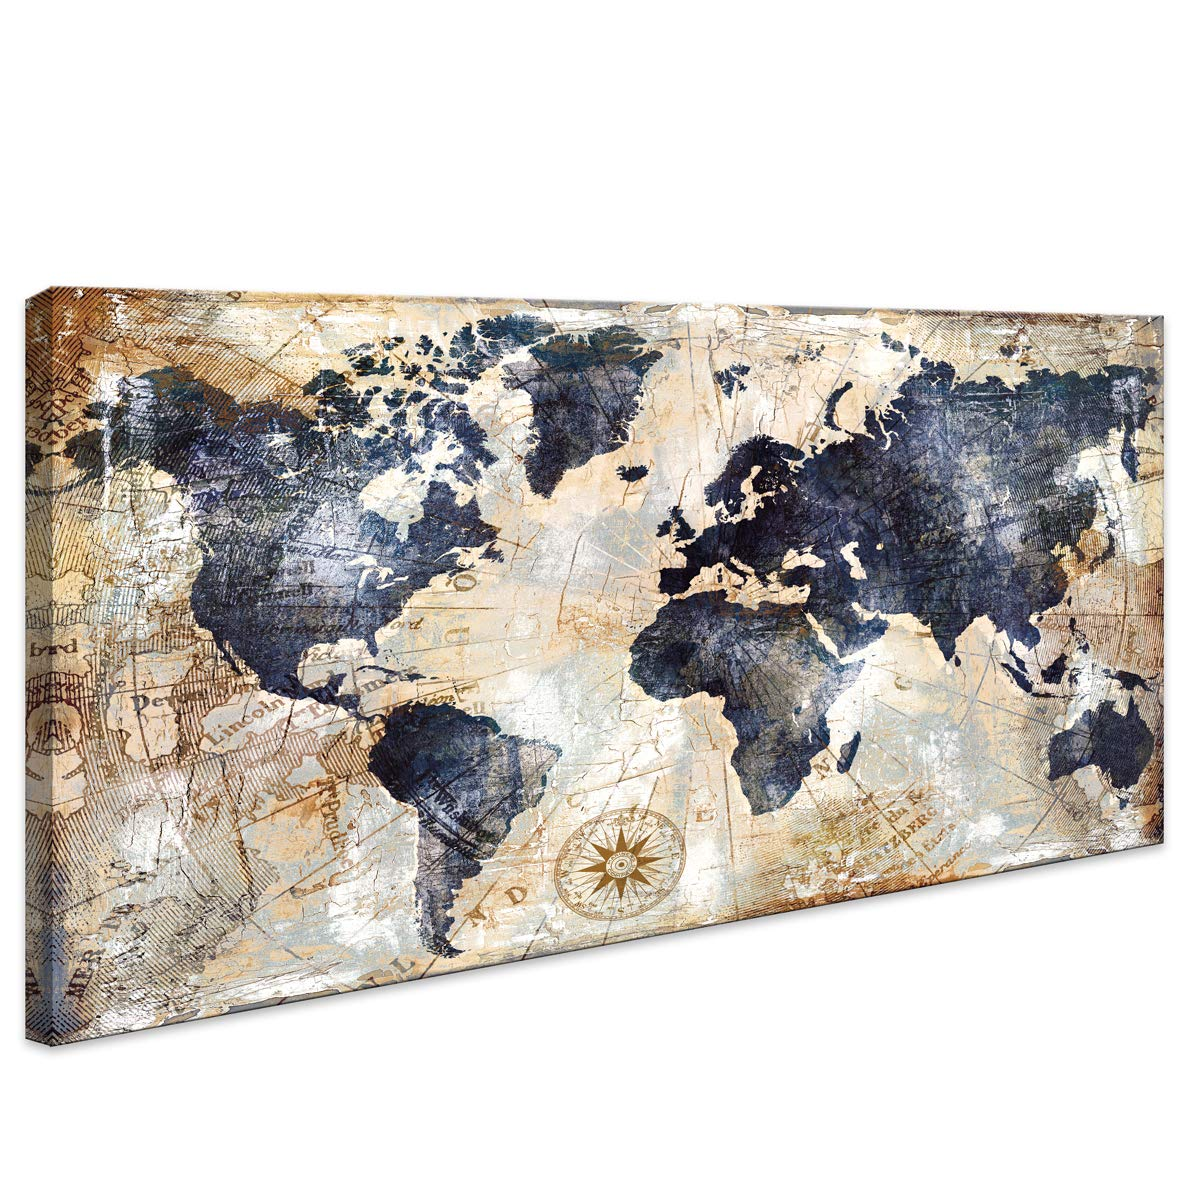 World Map Wall Art Framed Art Print Picture Wall Art Decor Home Interior - Map Picture for Office Wall Decor Canvas Artwork 20x40inch Ready to Hang